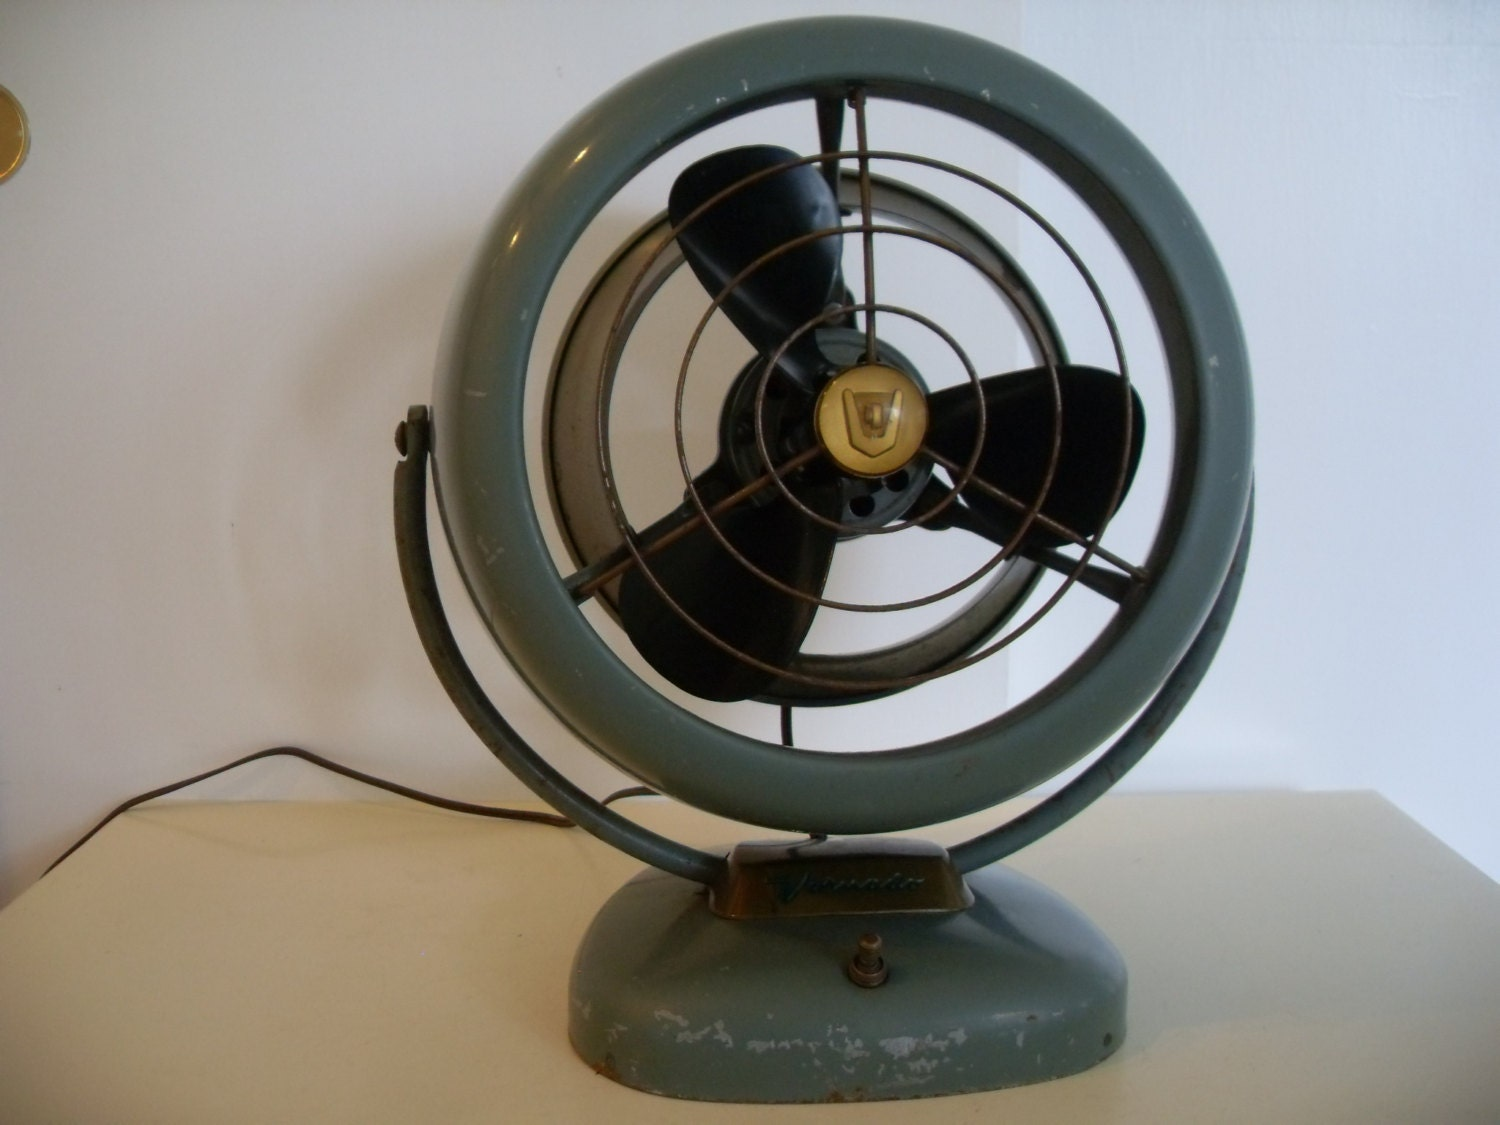 Best Table Top Fan : Vintage vornado table top fan